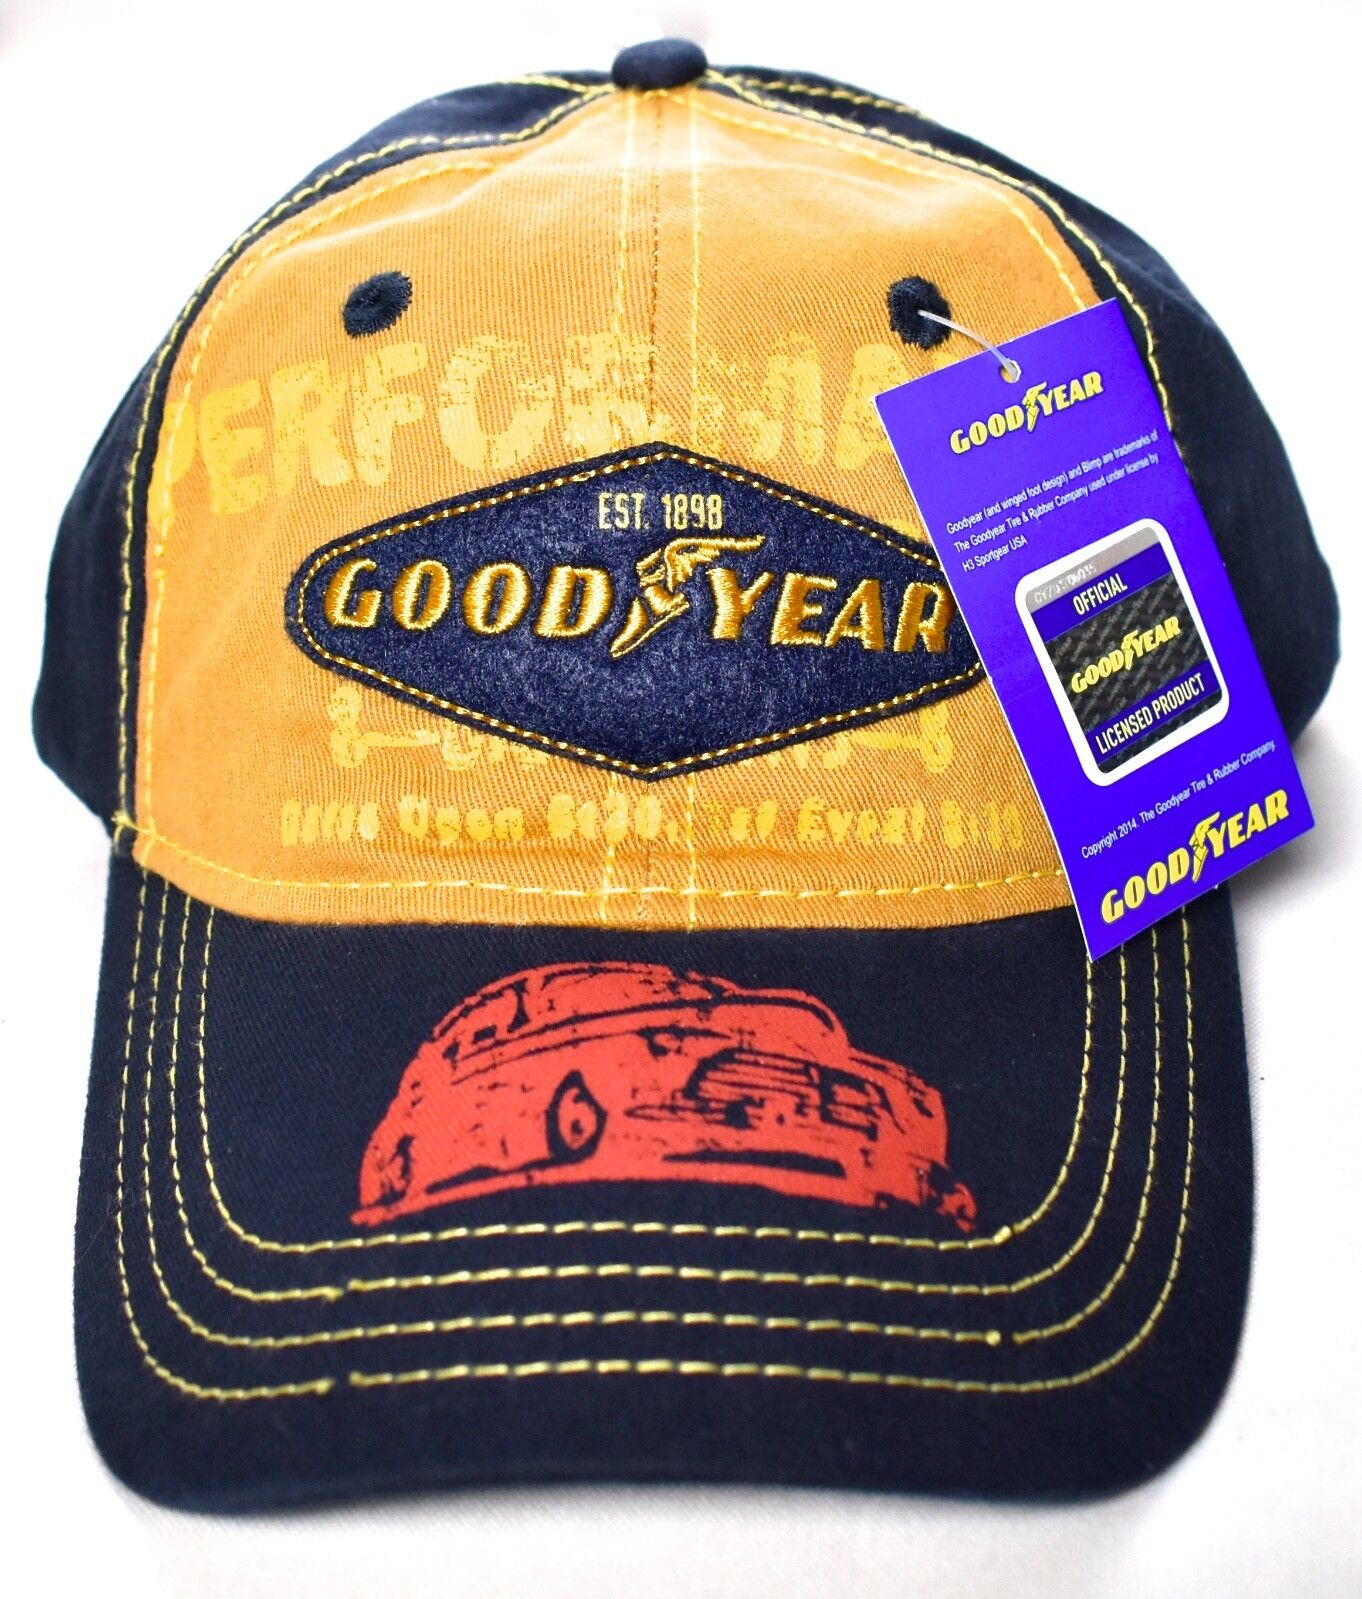 316416e89f0 Goodyear 1898 Baseball Hat cap Adjustable 100 Cotton Navy gold for ...